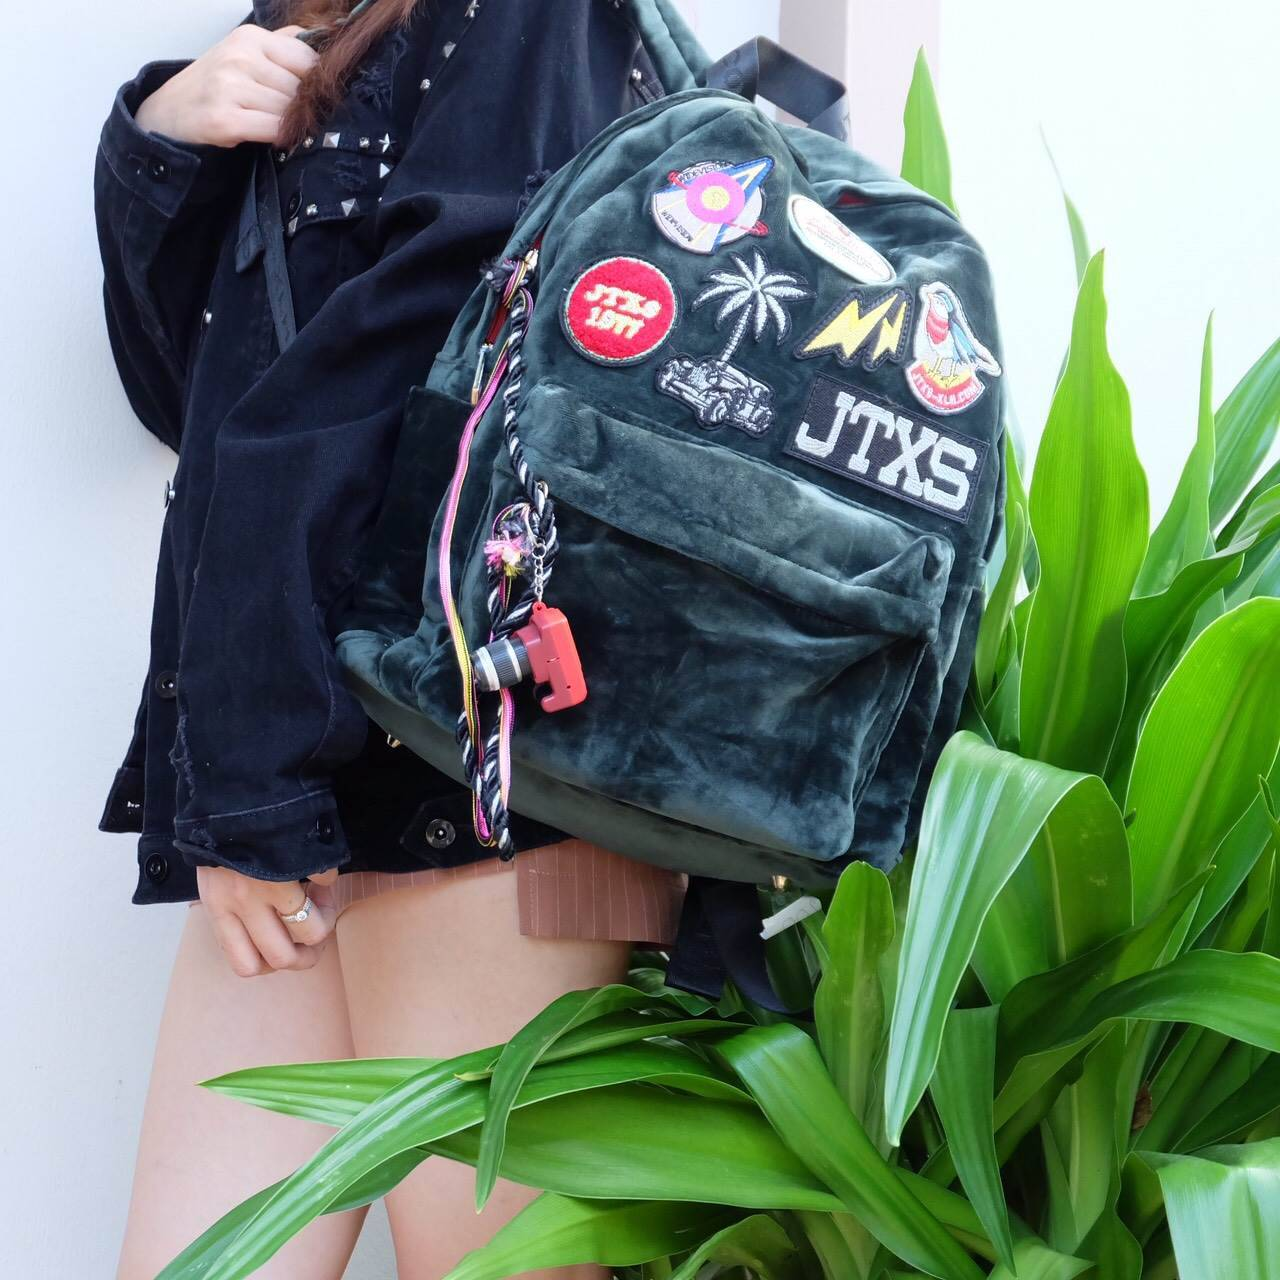 JTXS Limited Backpack 2017 Chic NetiDol